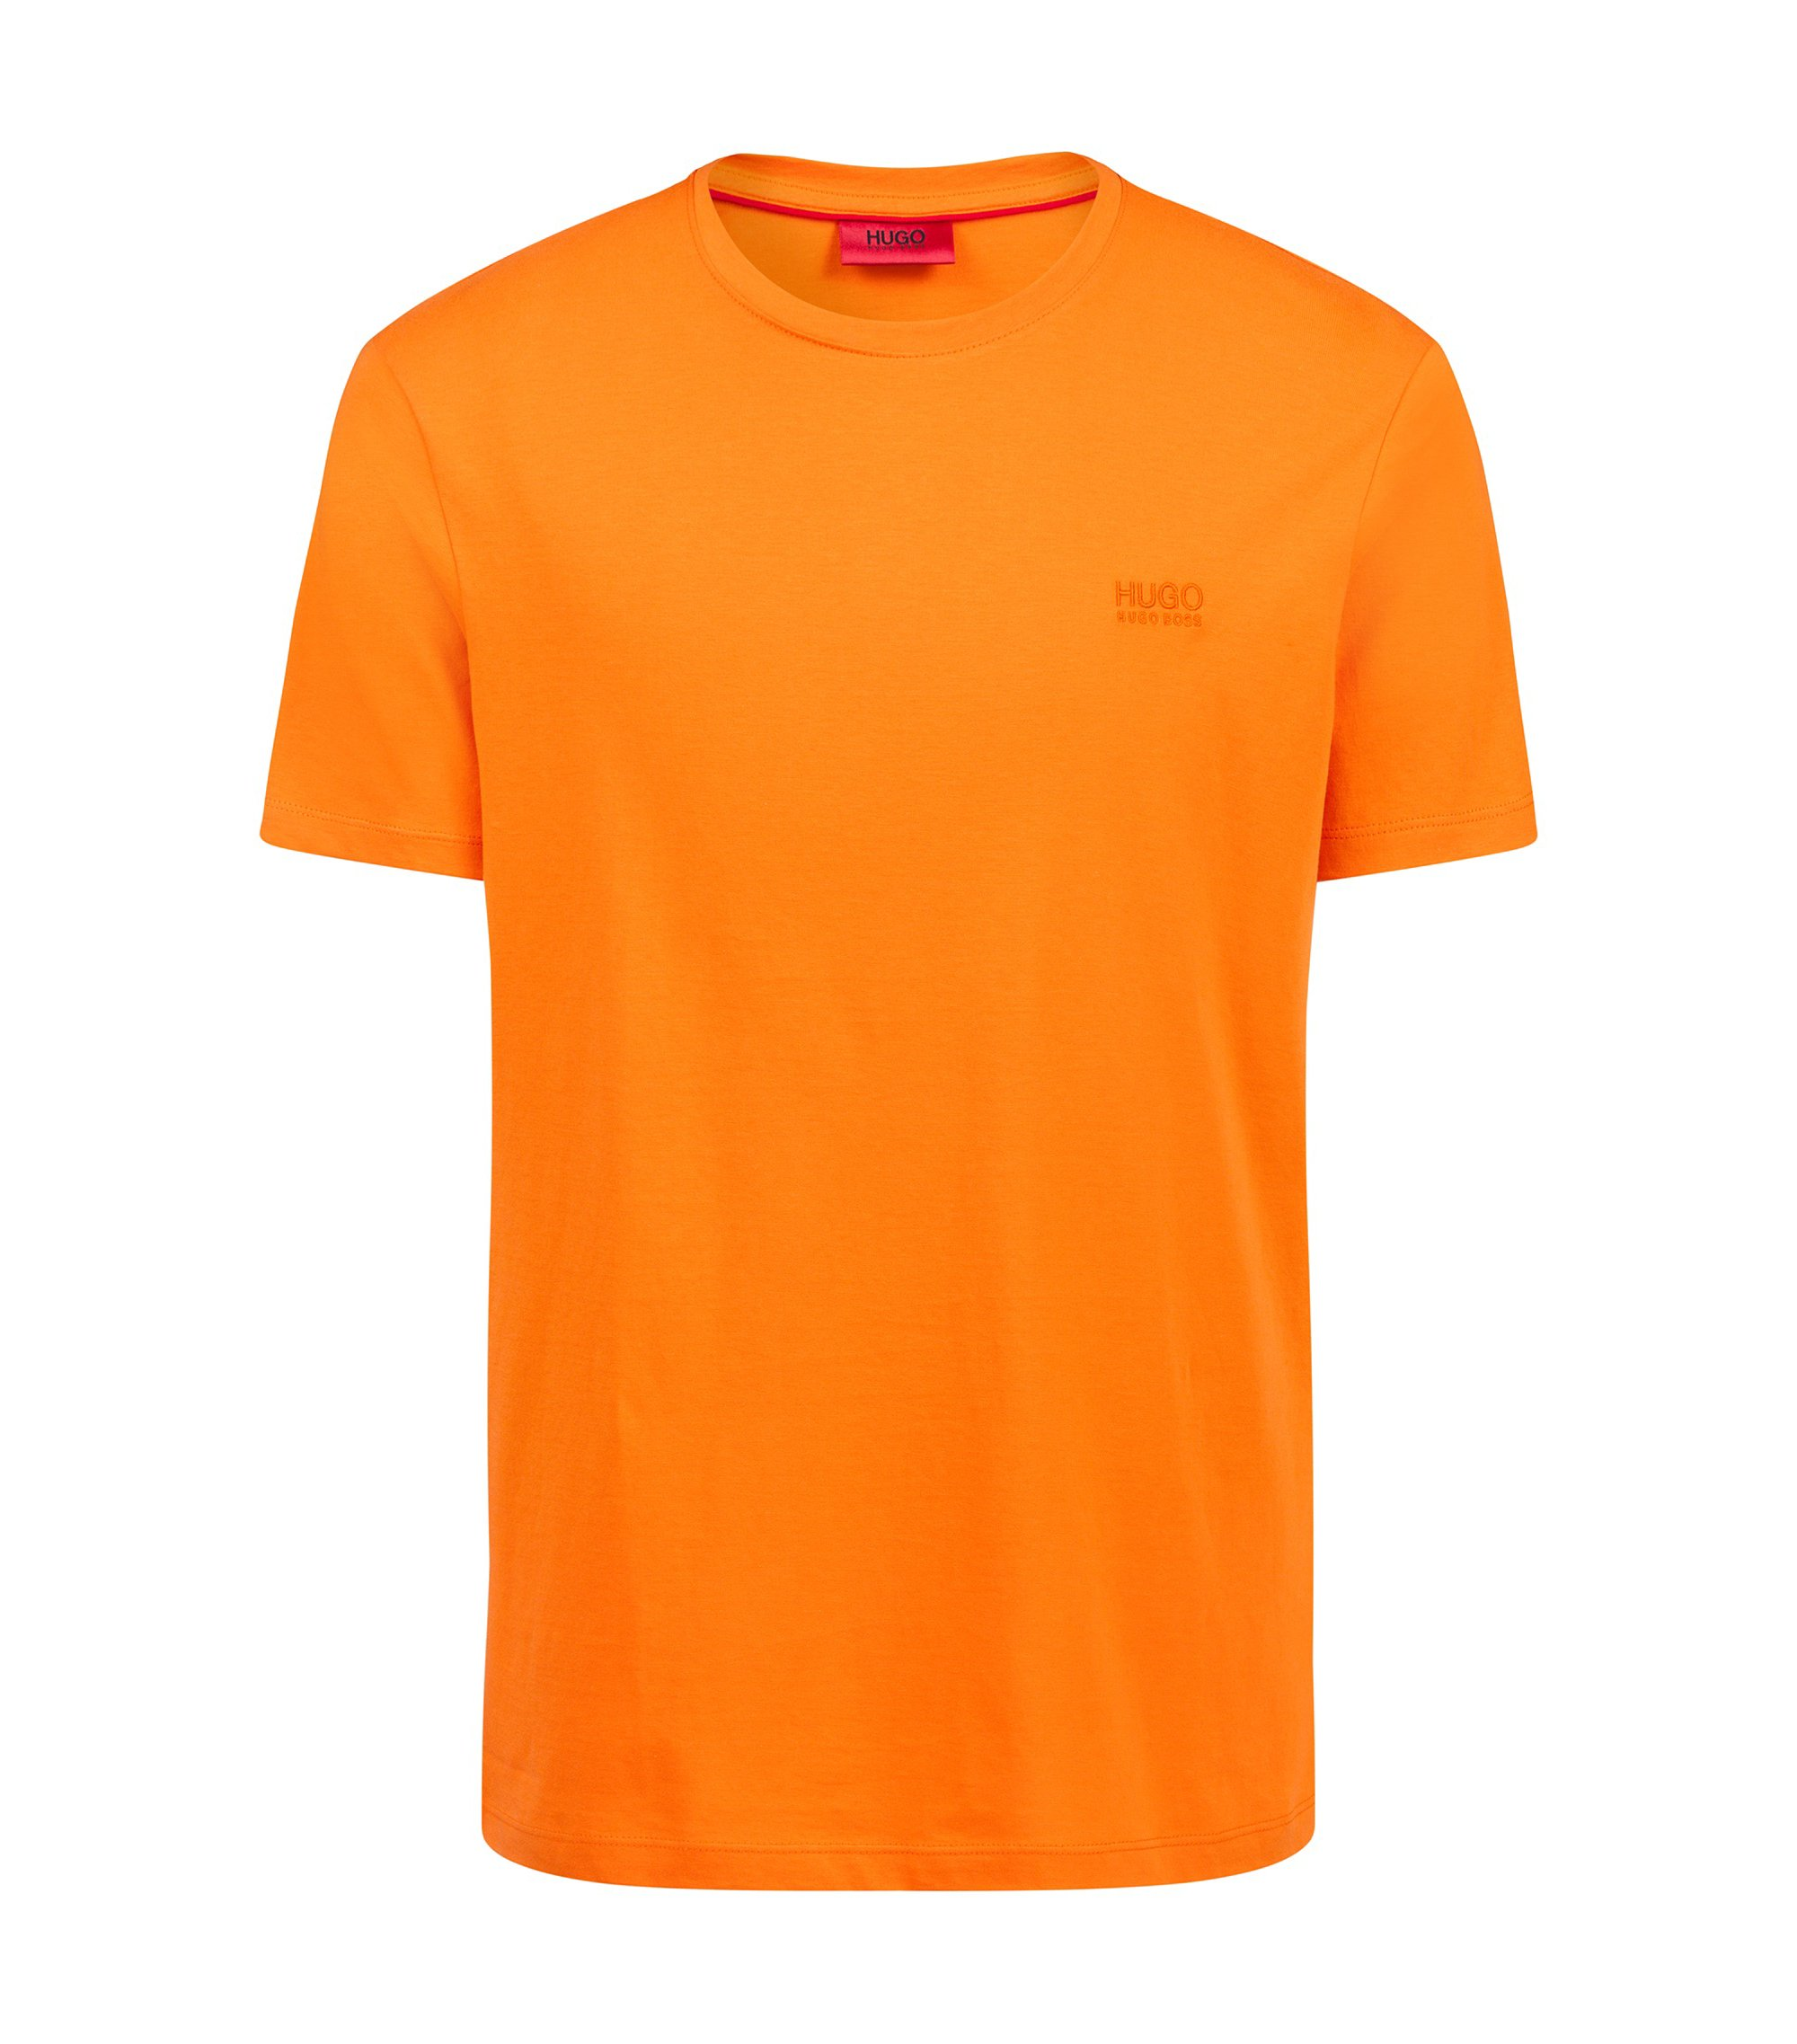 T-shirt Regular Fit en coton doux avec logo, Orange